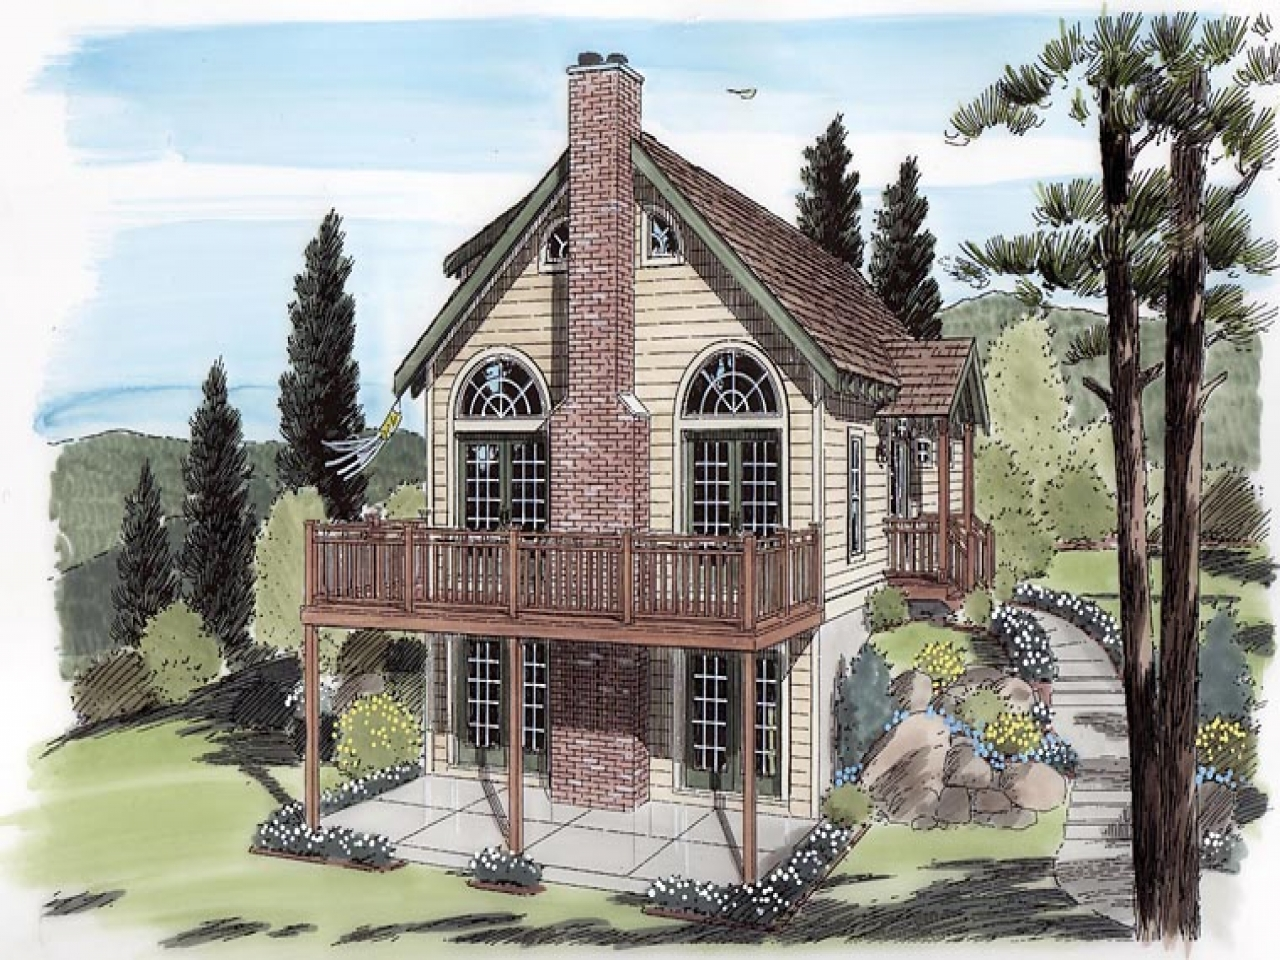 Cabin cottage traditional house plan 24705 elevation for Traditional bungalow house plans